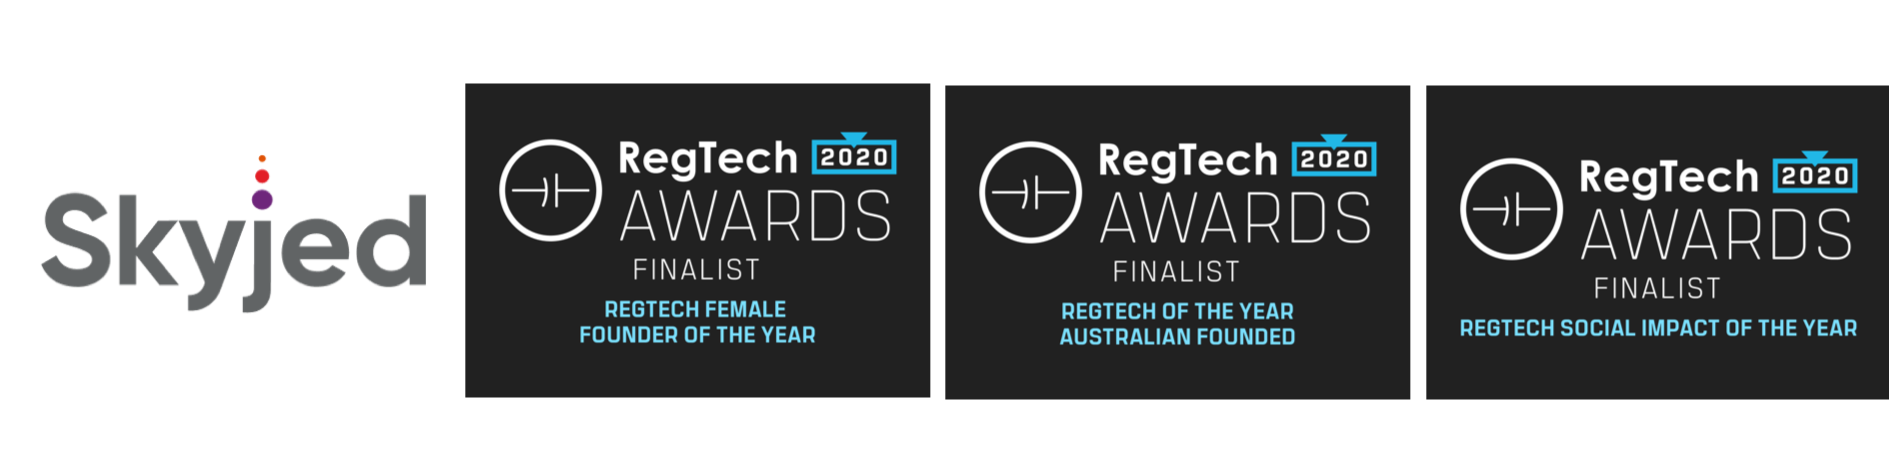 Skyjed in the Regtech 2020 Awards